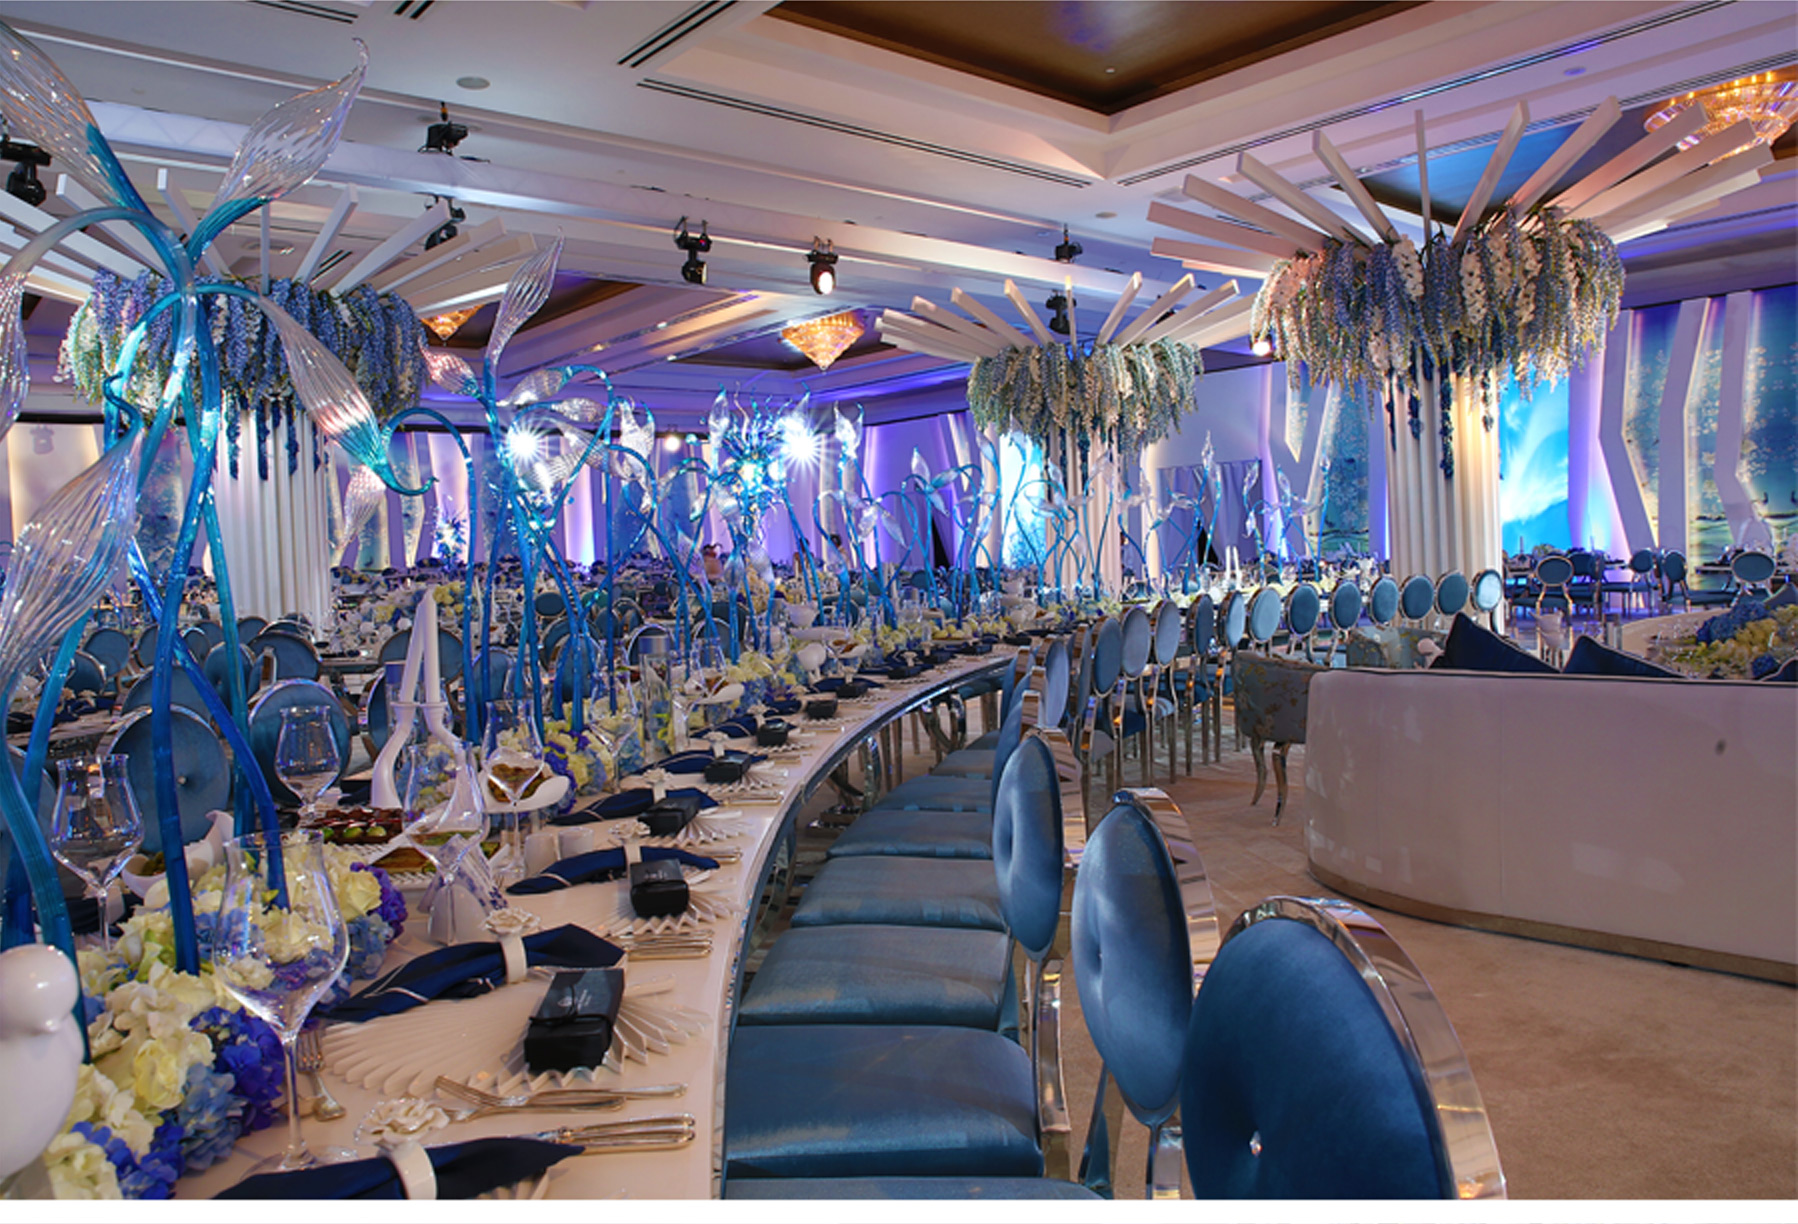 Decoration Lights In Qatar Wanker for